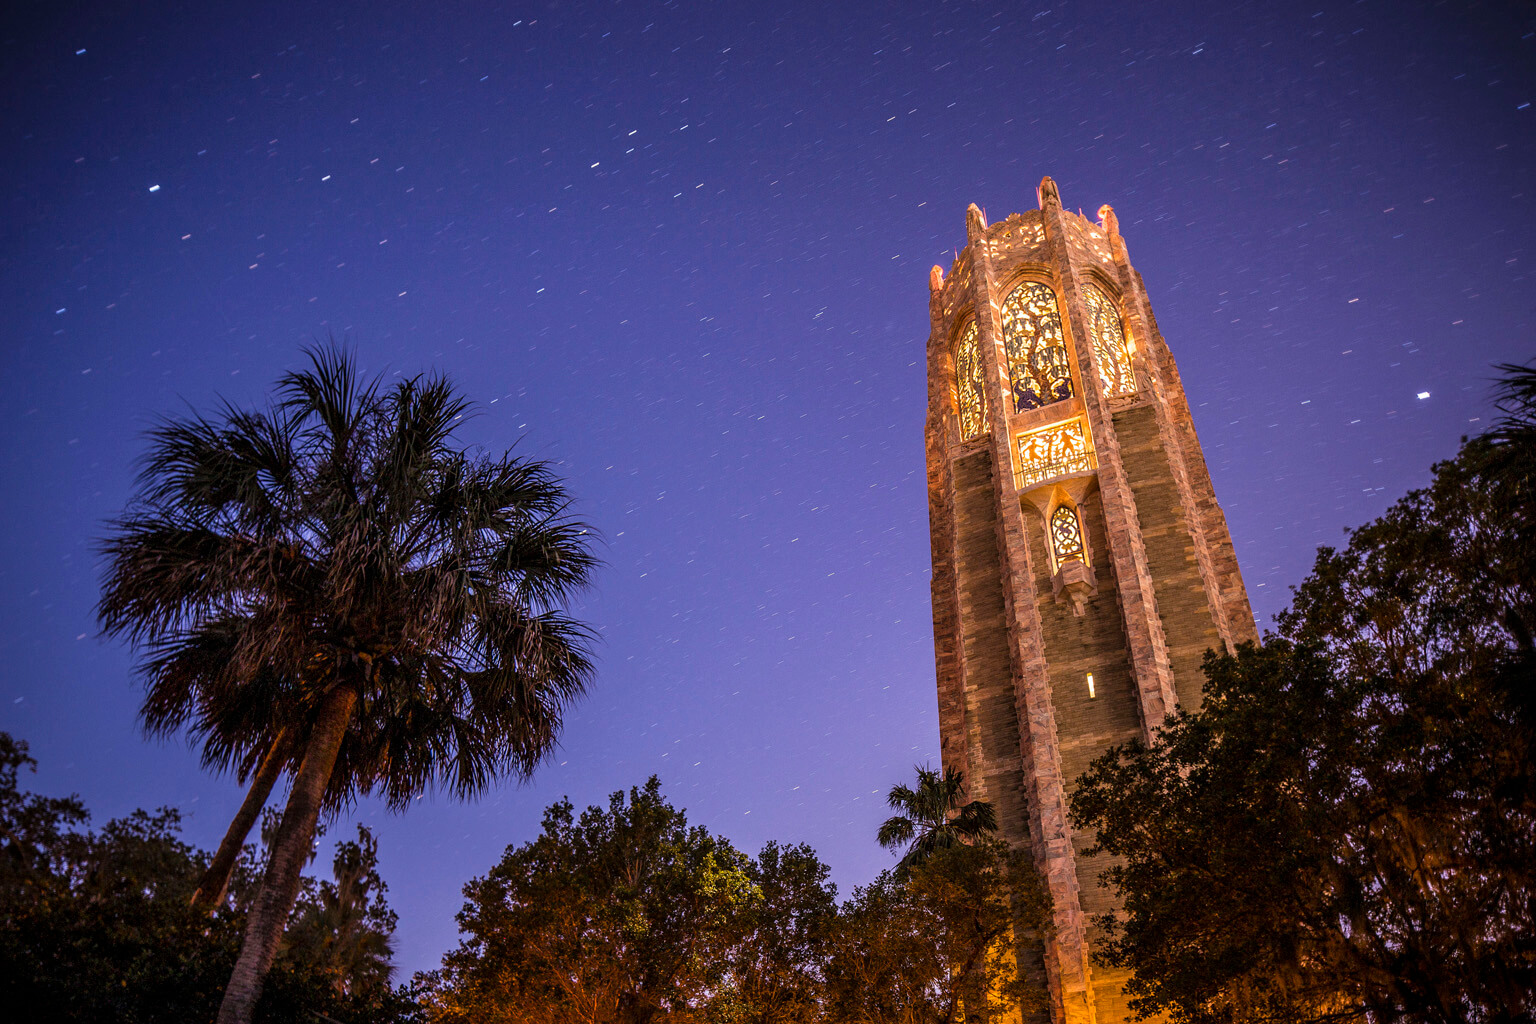 Bok Tower Gardens Moonlight Carillon Concerts • Photo by Chad Baumer